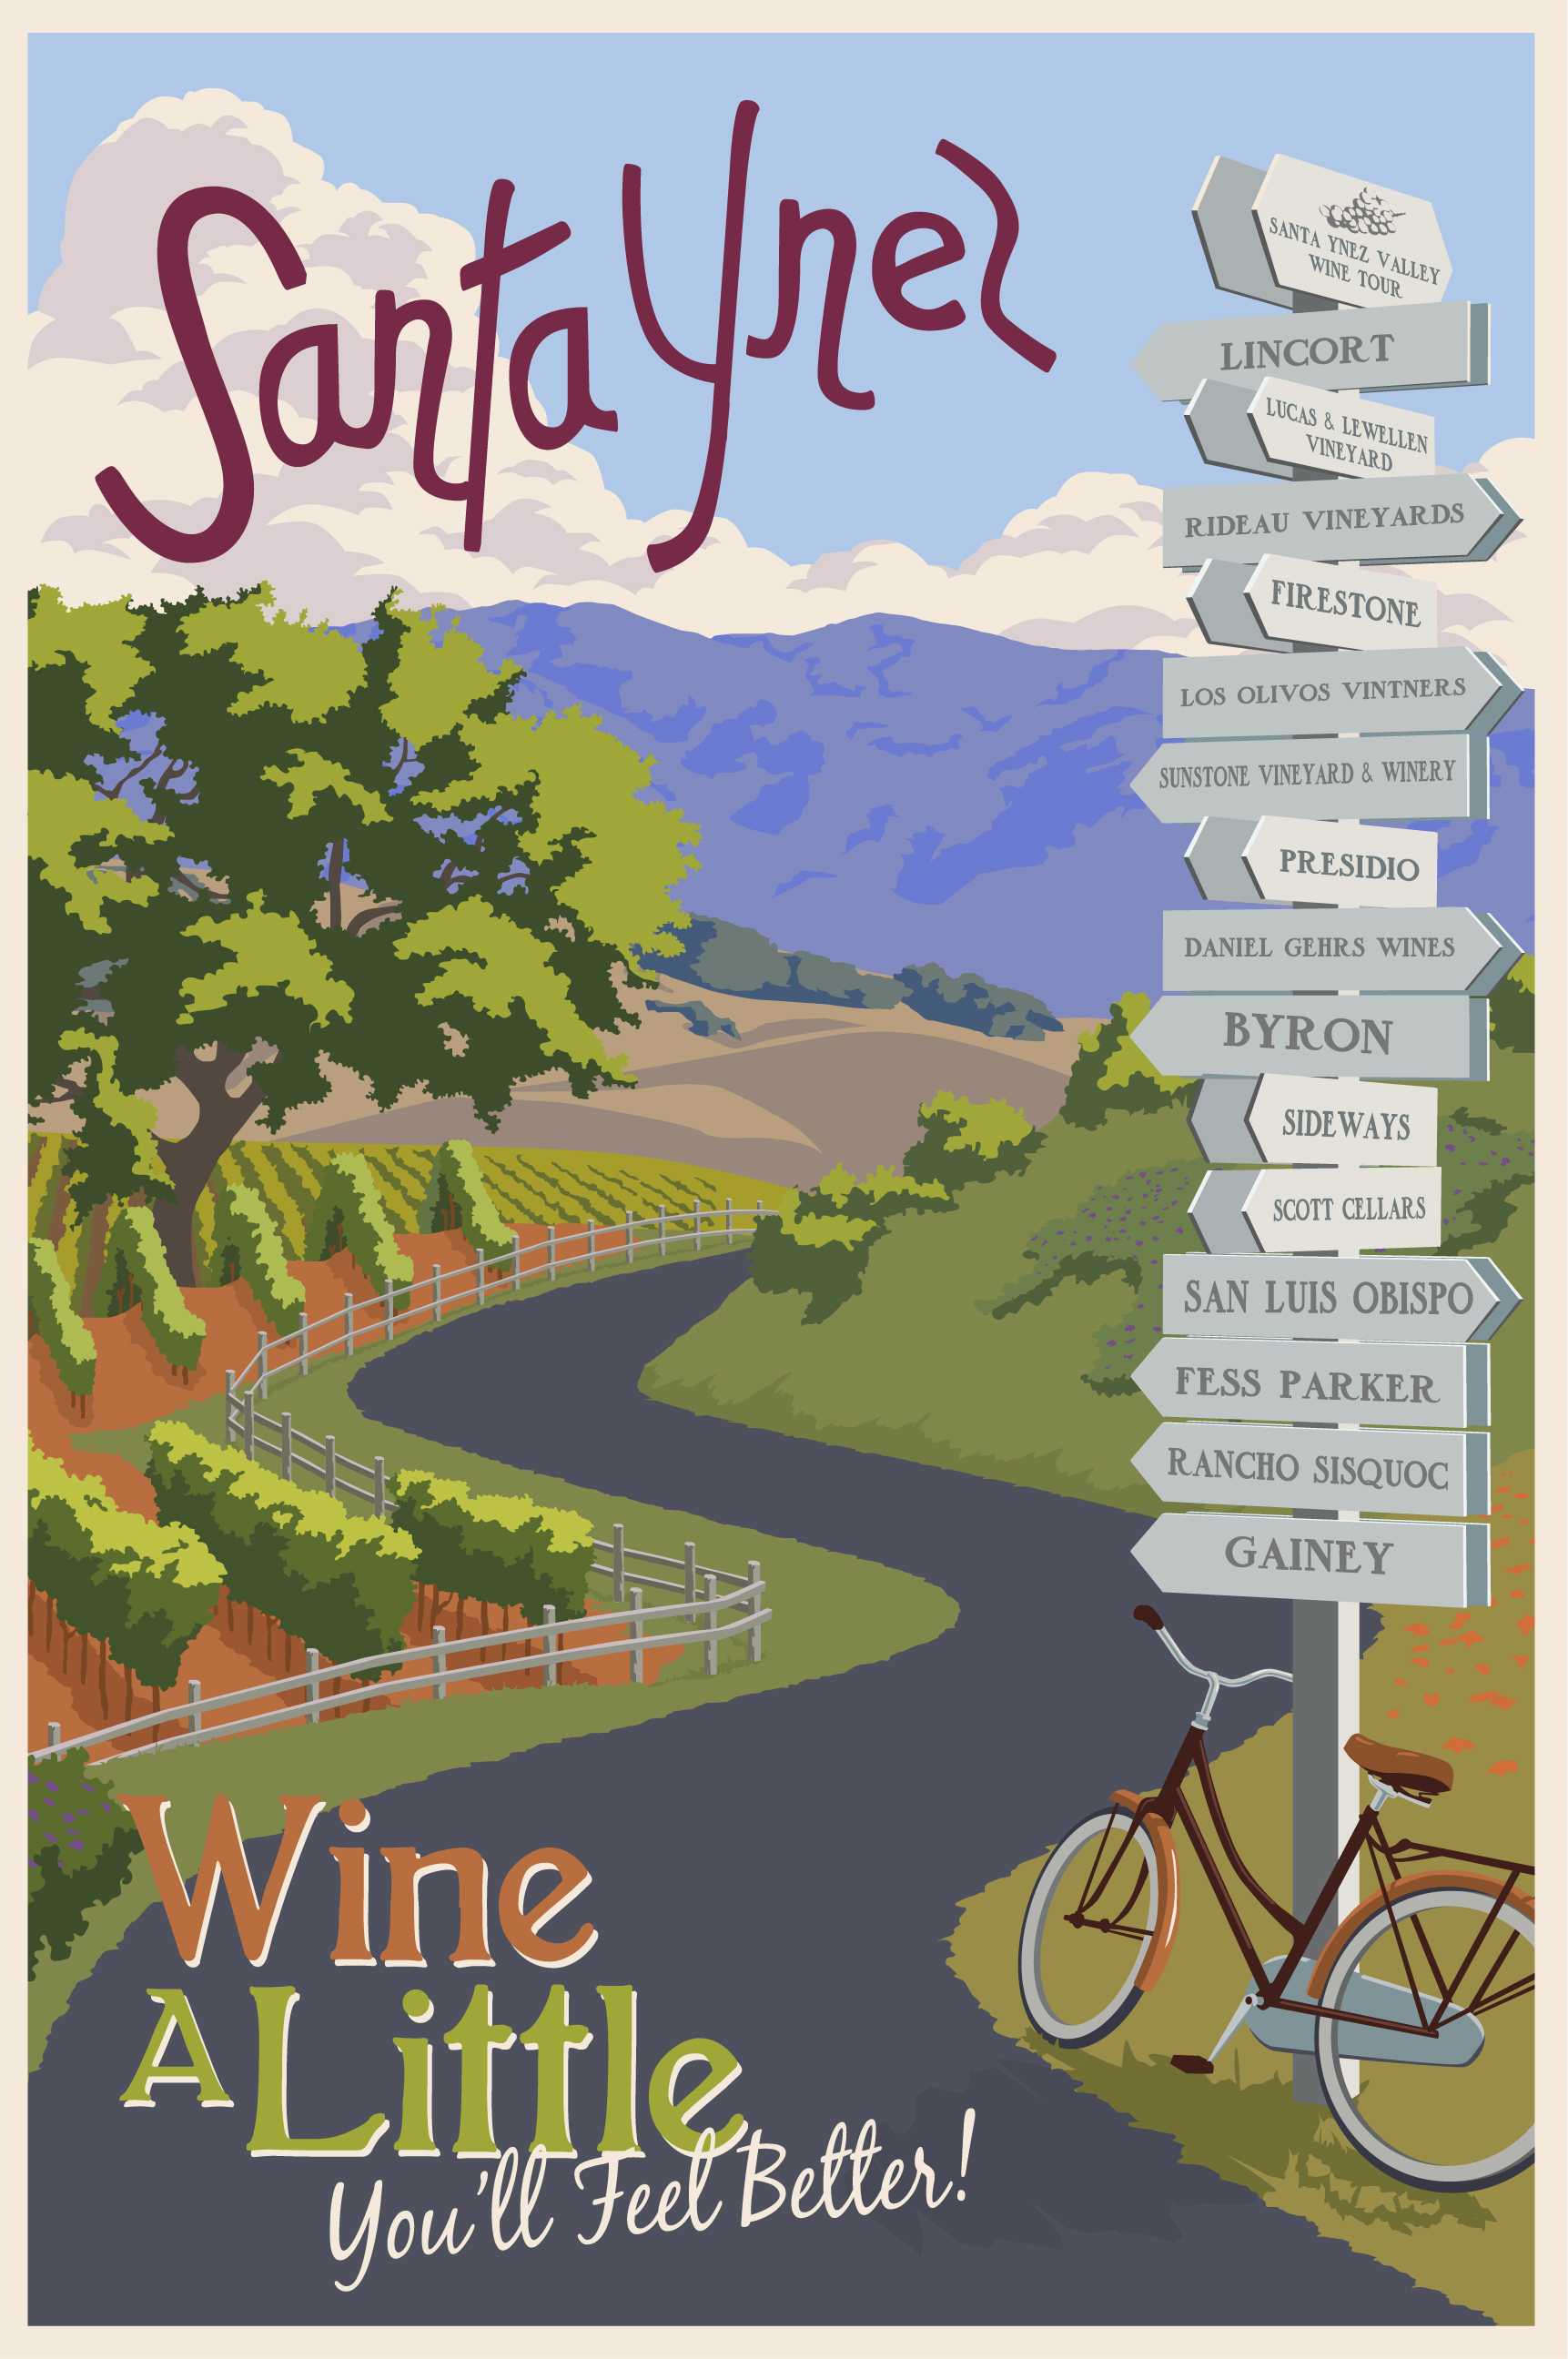 Santa Ynez - Wine a Little. You'll feel better.